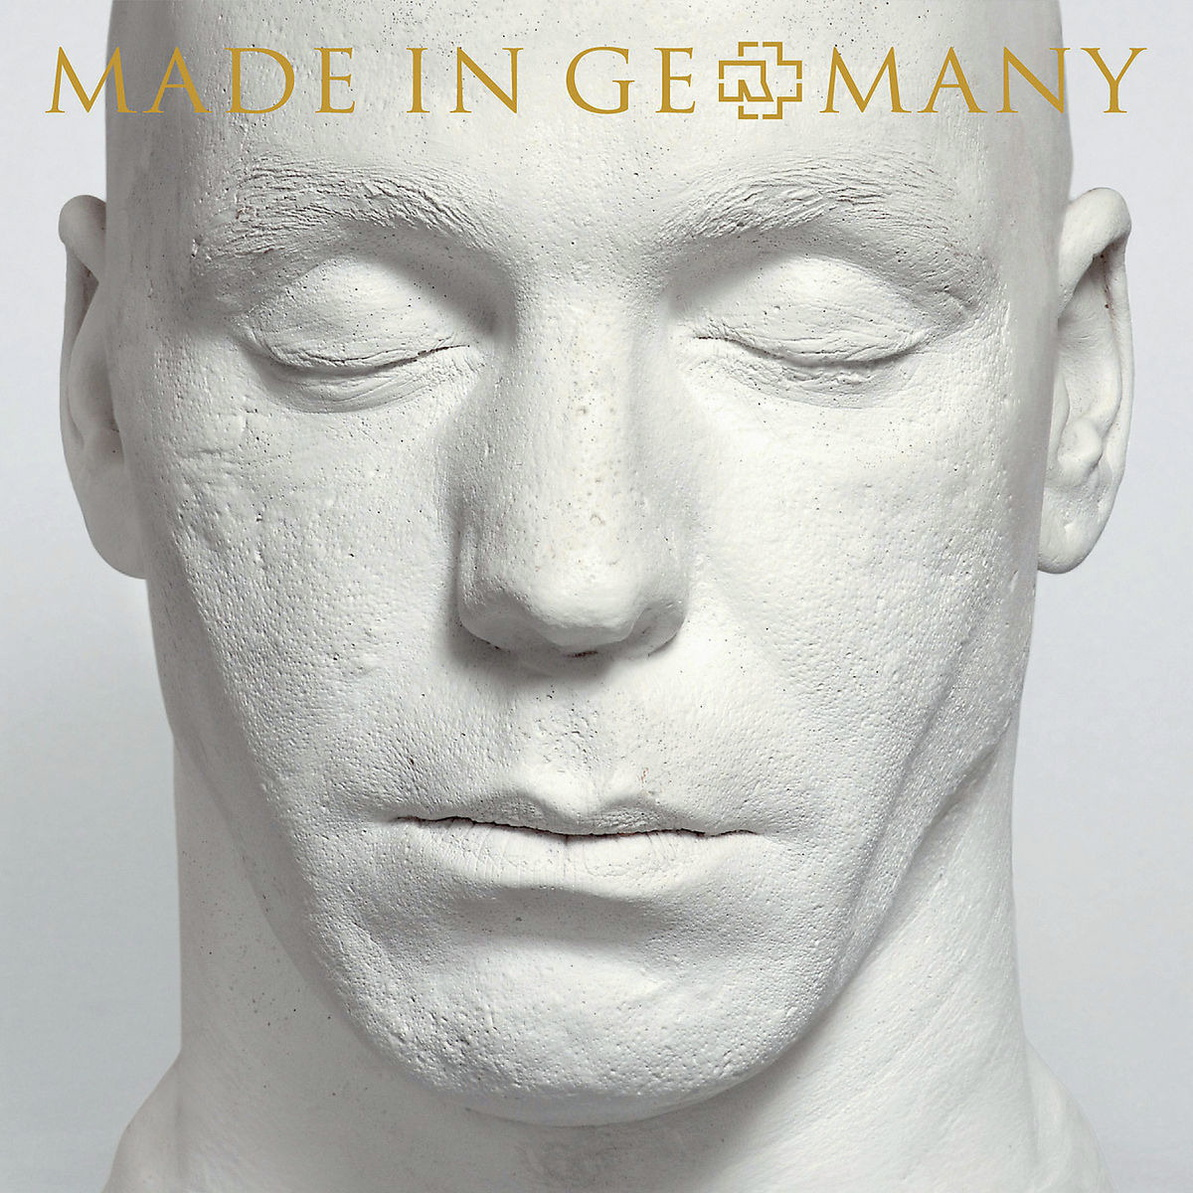 Rammstein - Made in Germany 1995 - 2011 - Best Of